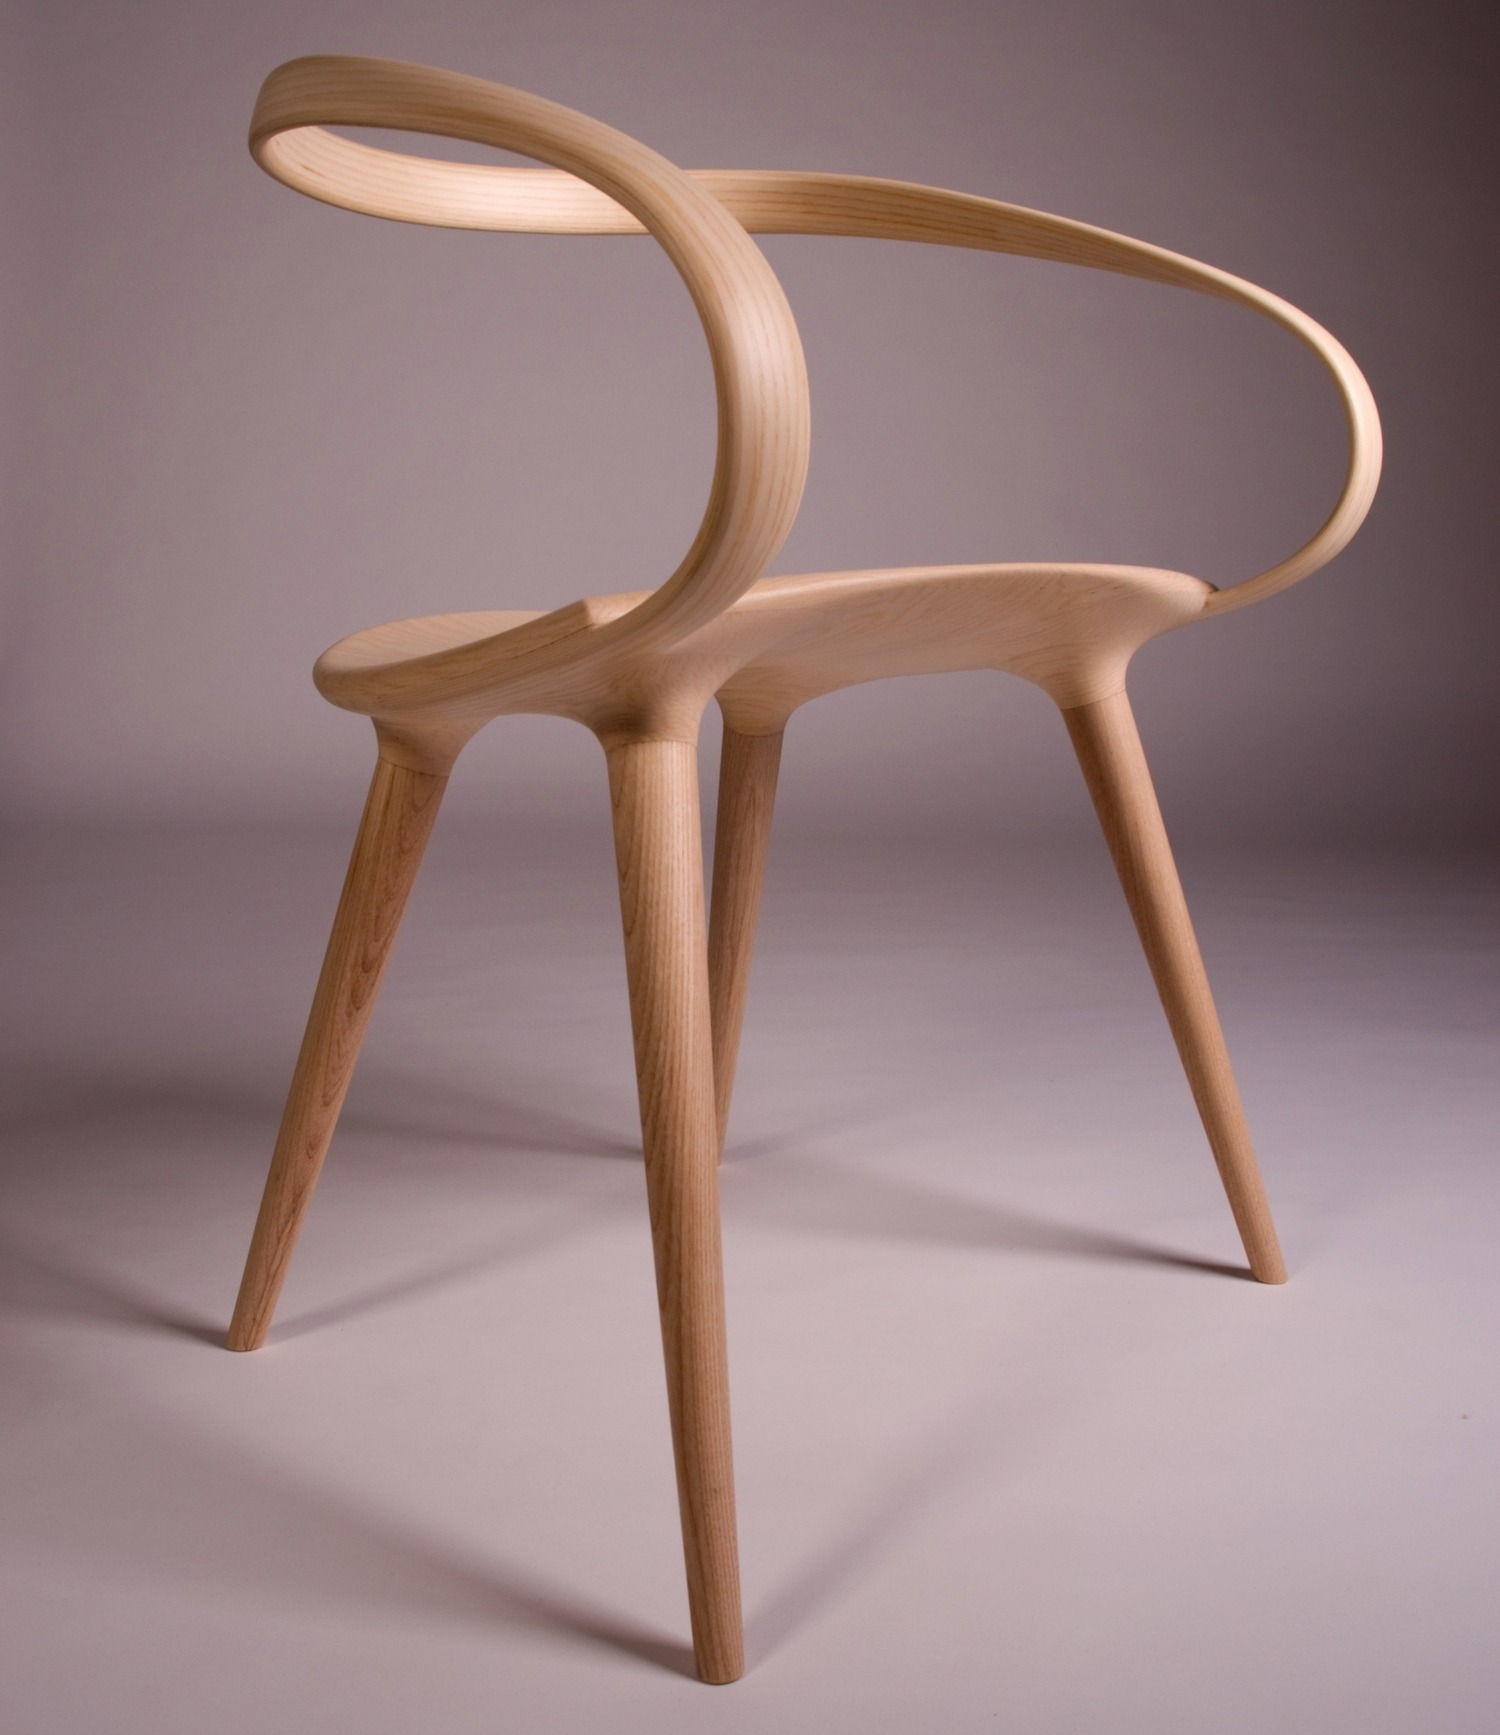 This insane bent plywood chair is inspired by modern for Chair back design names